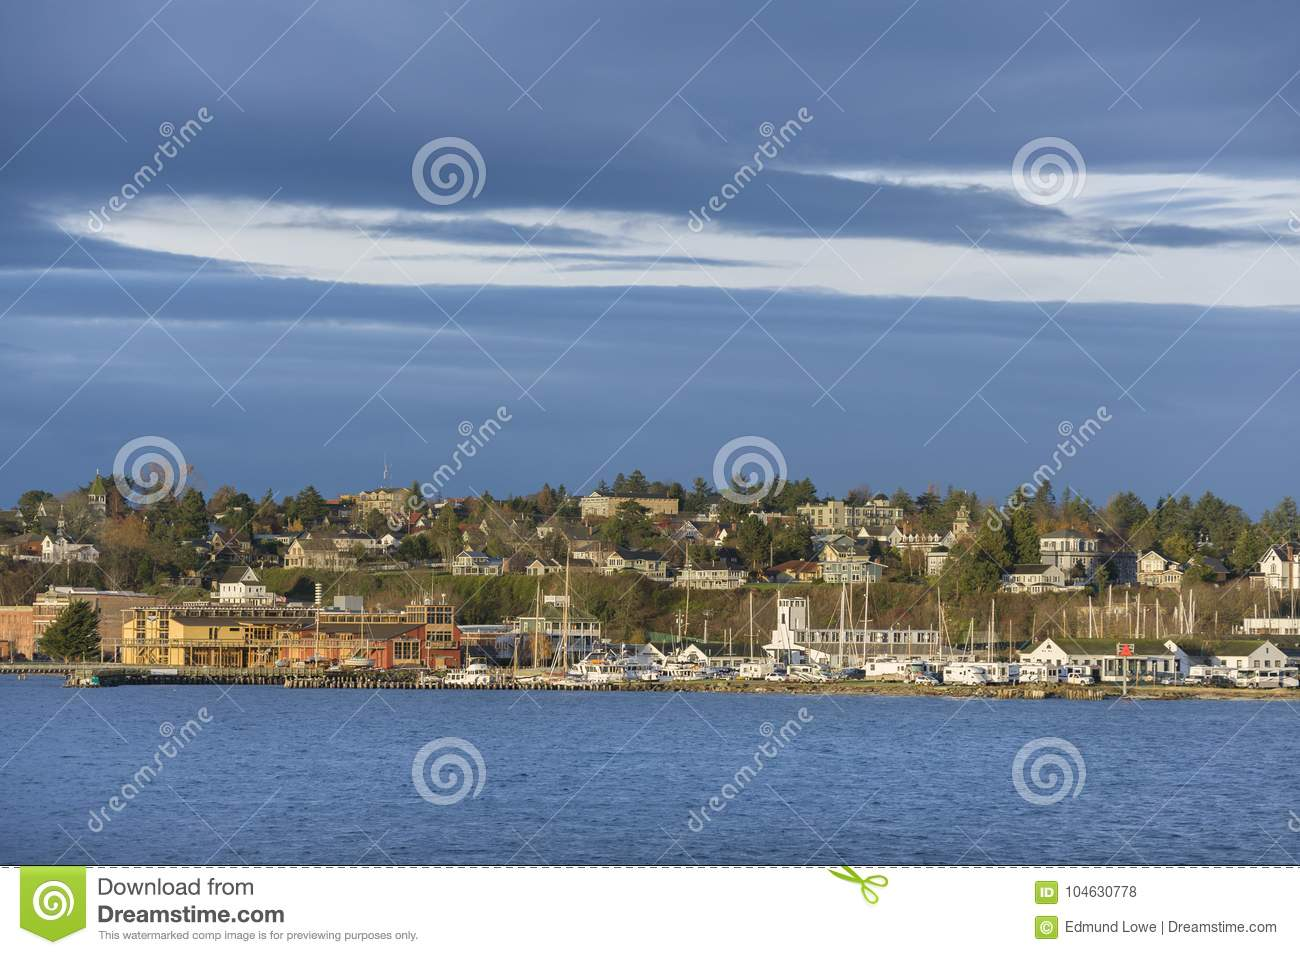 Download Historische Haven Townsend, Washington Waterfront Bij Zonsopgang Redactionele Stock Foto - Afbeelding bestaande uit juan, architectuur: 104630778